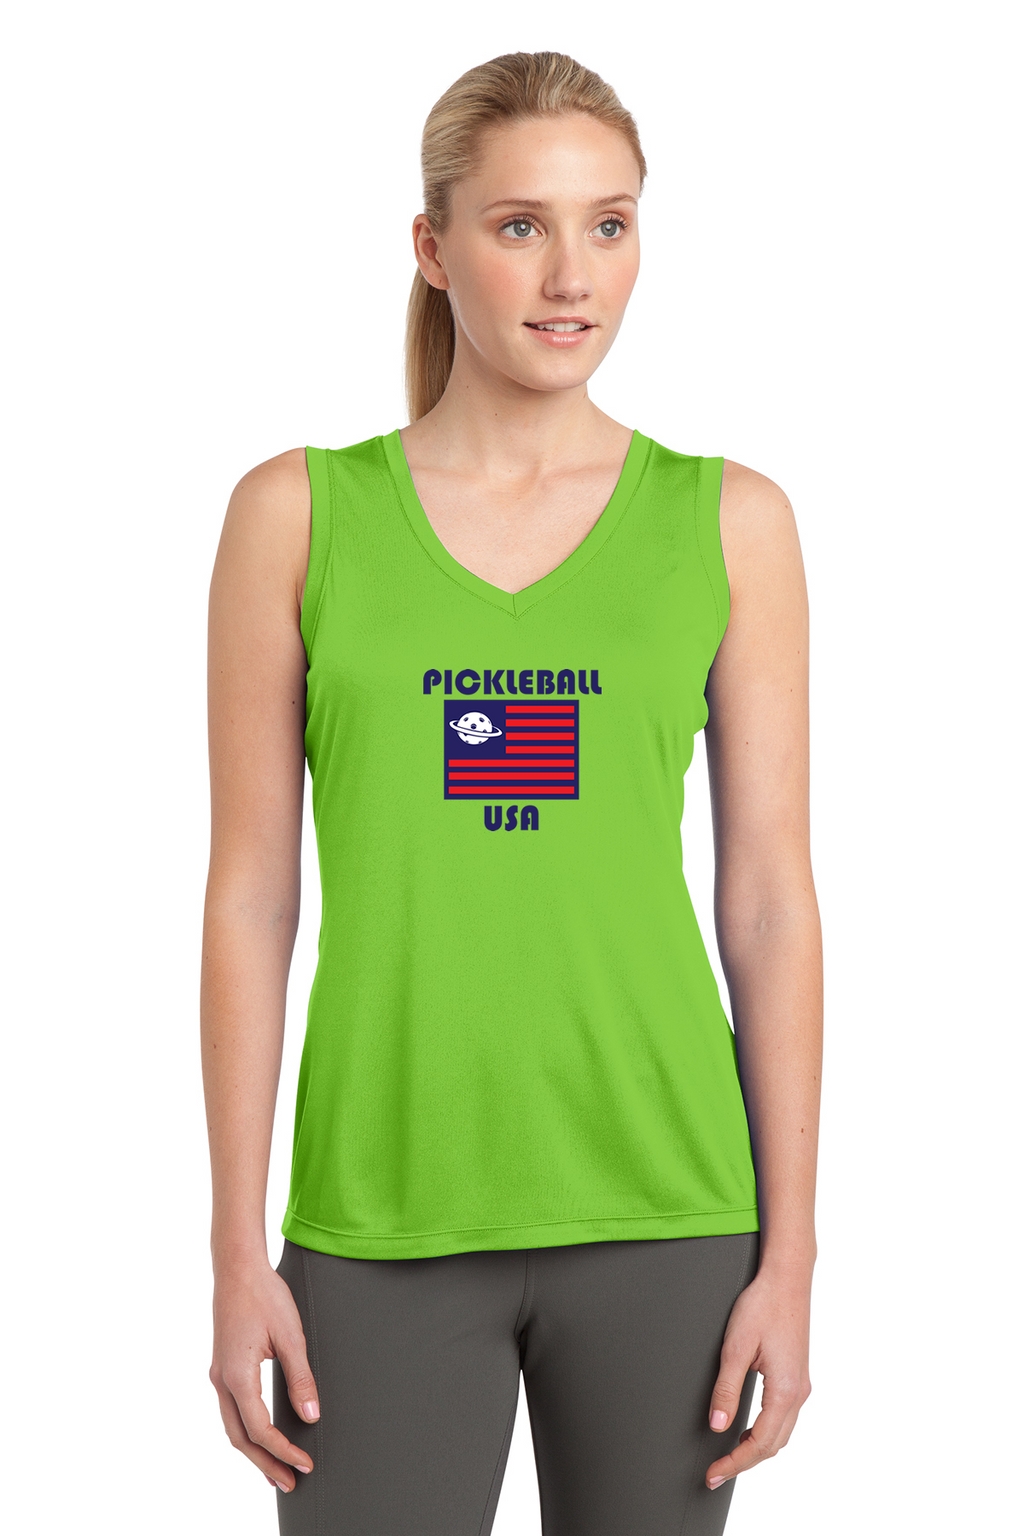 Ladies Sleeveless Performance Tee 'PB USA'